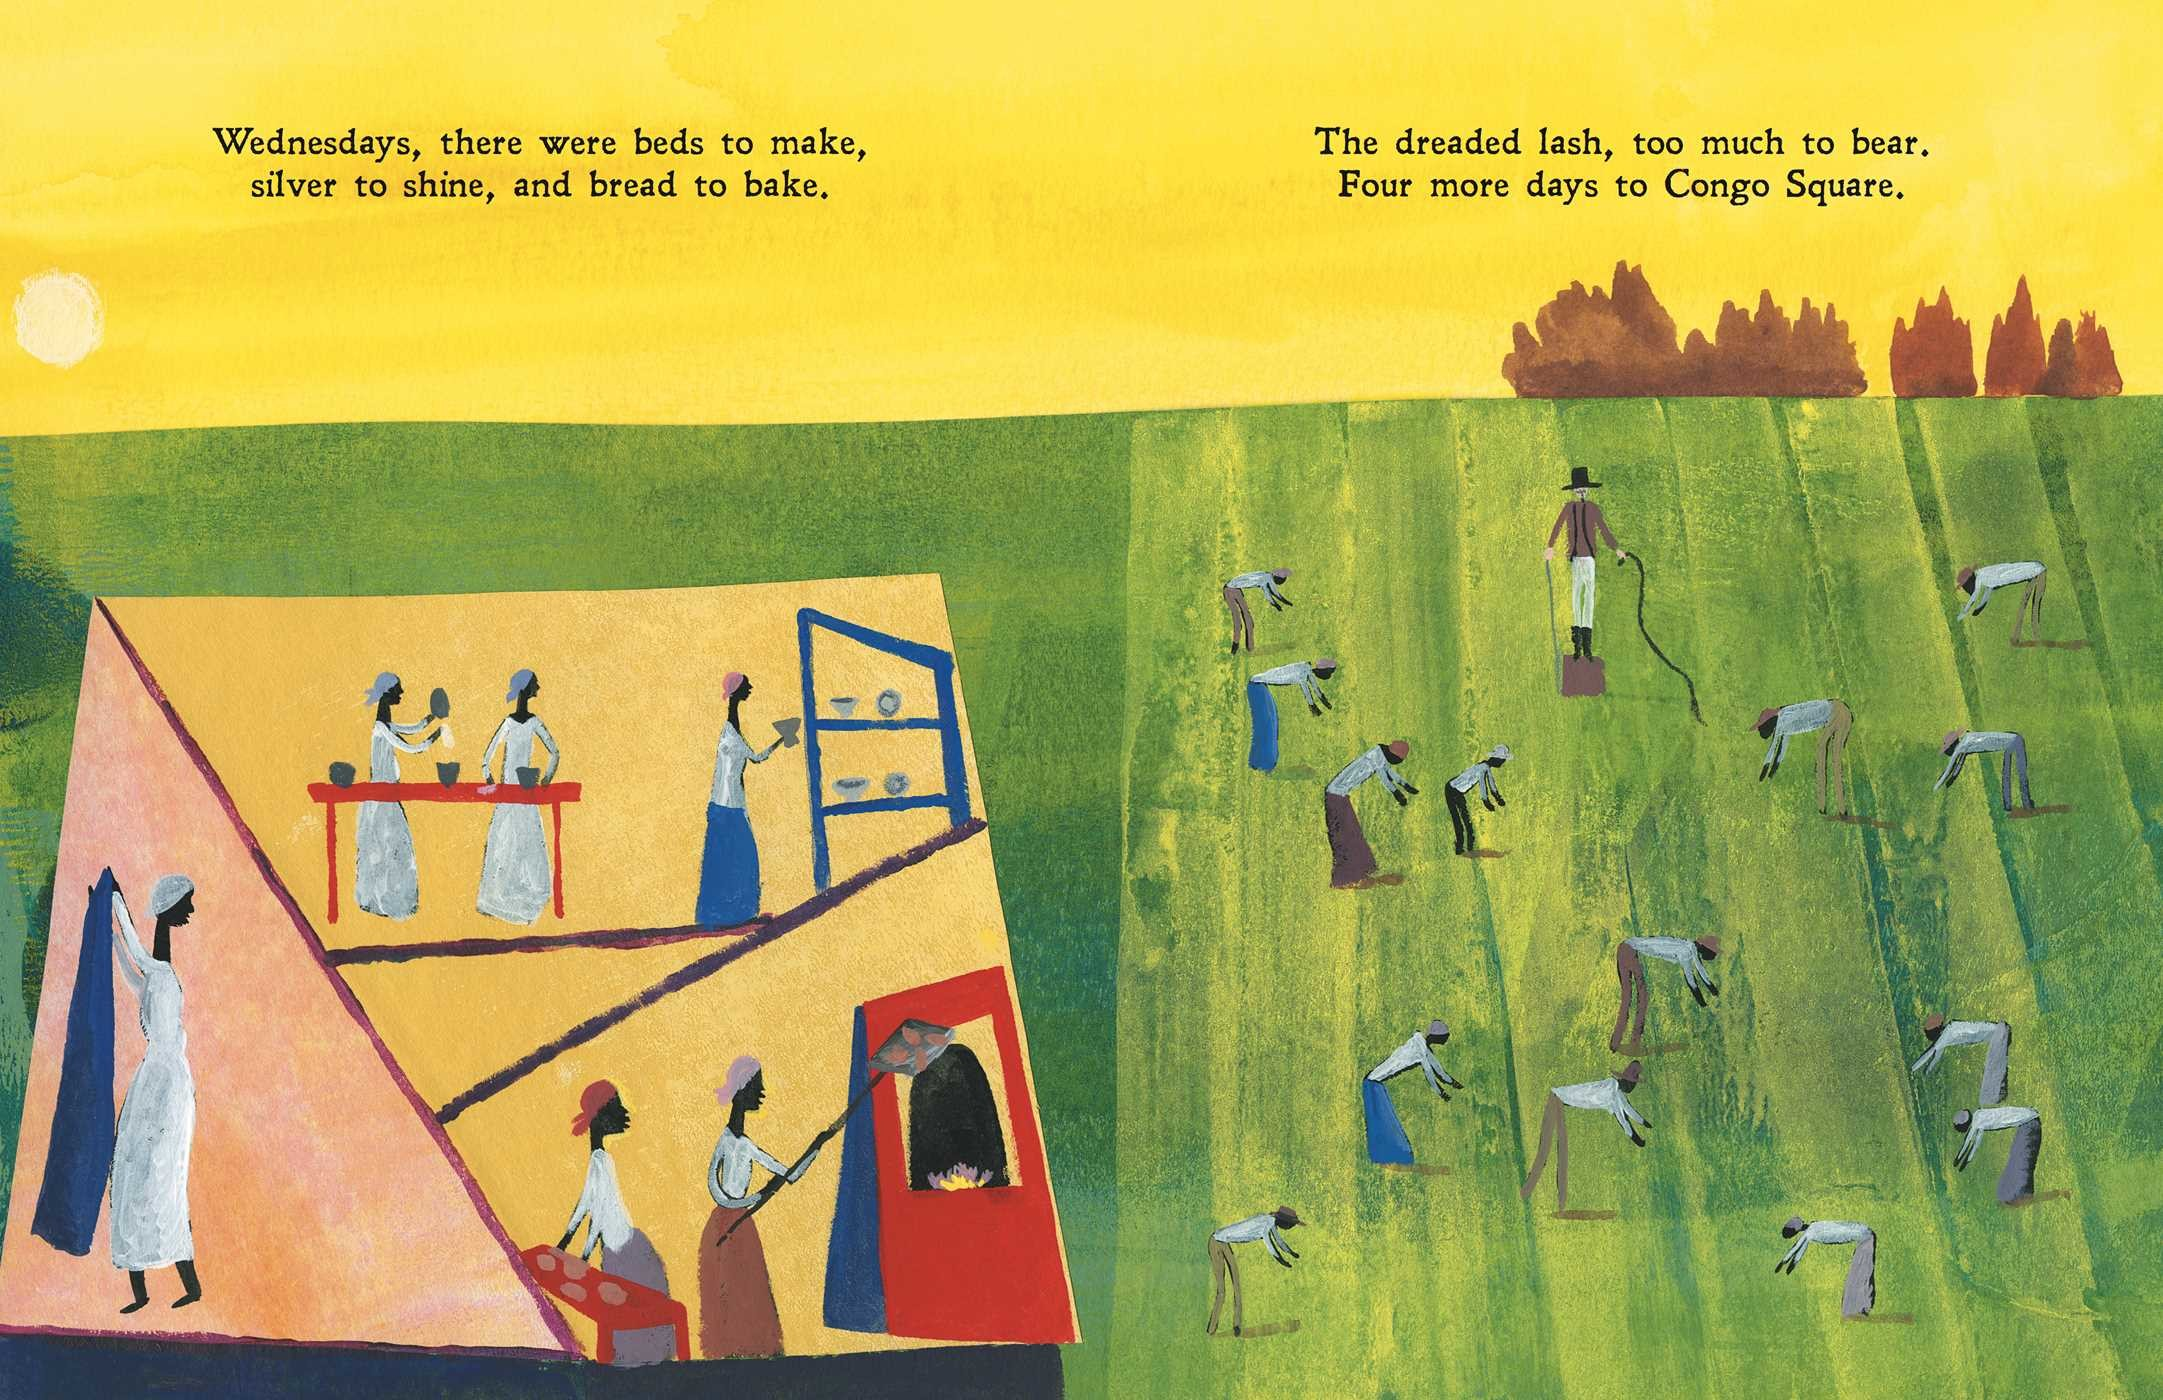 celebrate-picture-books-picture-book-review-freedom-in-congo-square-wednesday